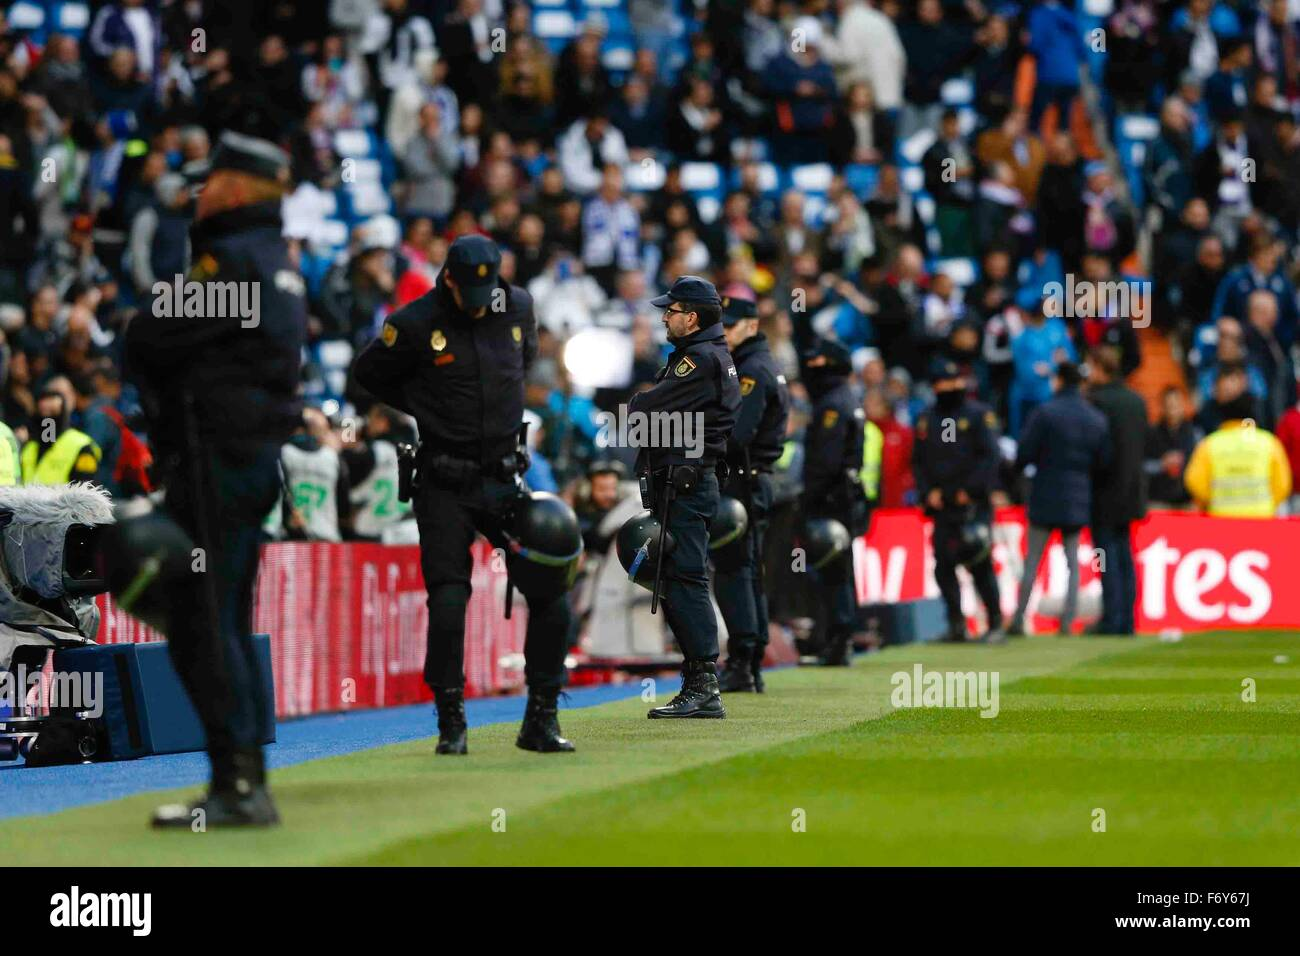 Madrid, Spain. 21st Nov, 2015. Security on high alert during the La Liga football match between Real Madrid and Stock Photo